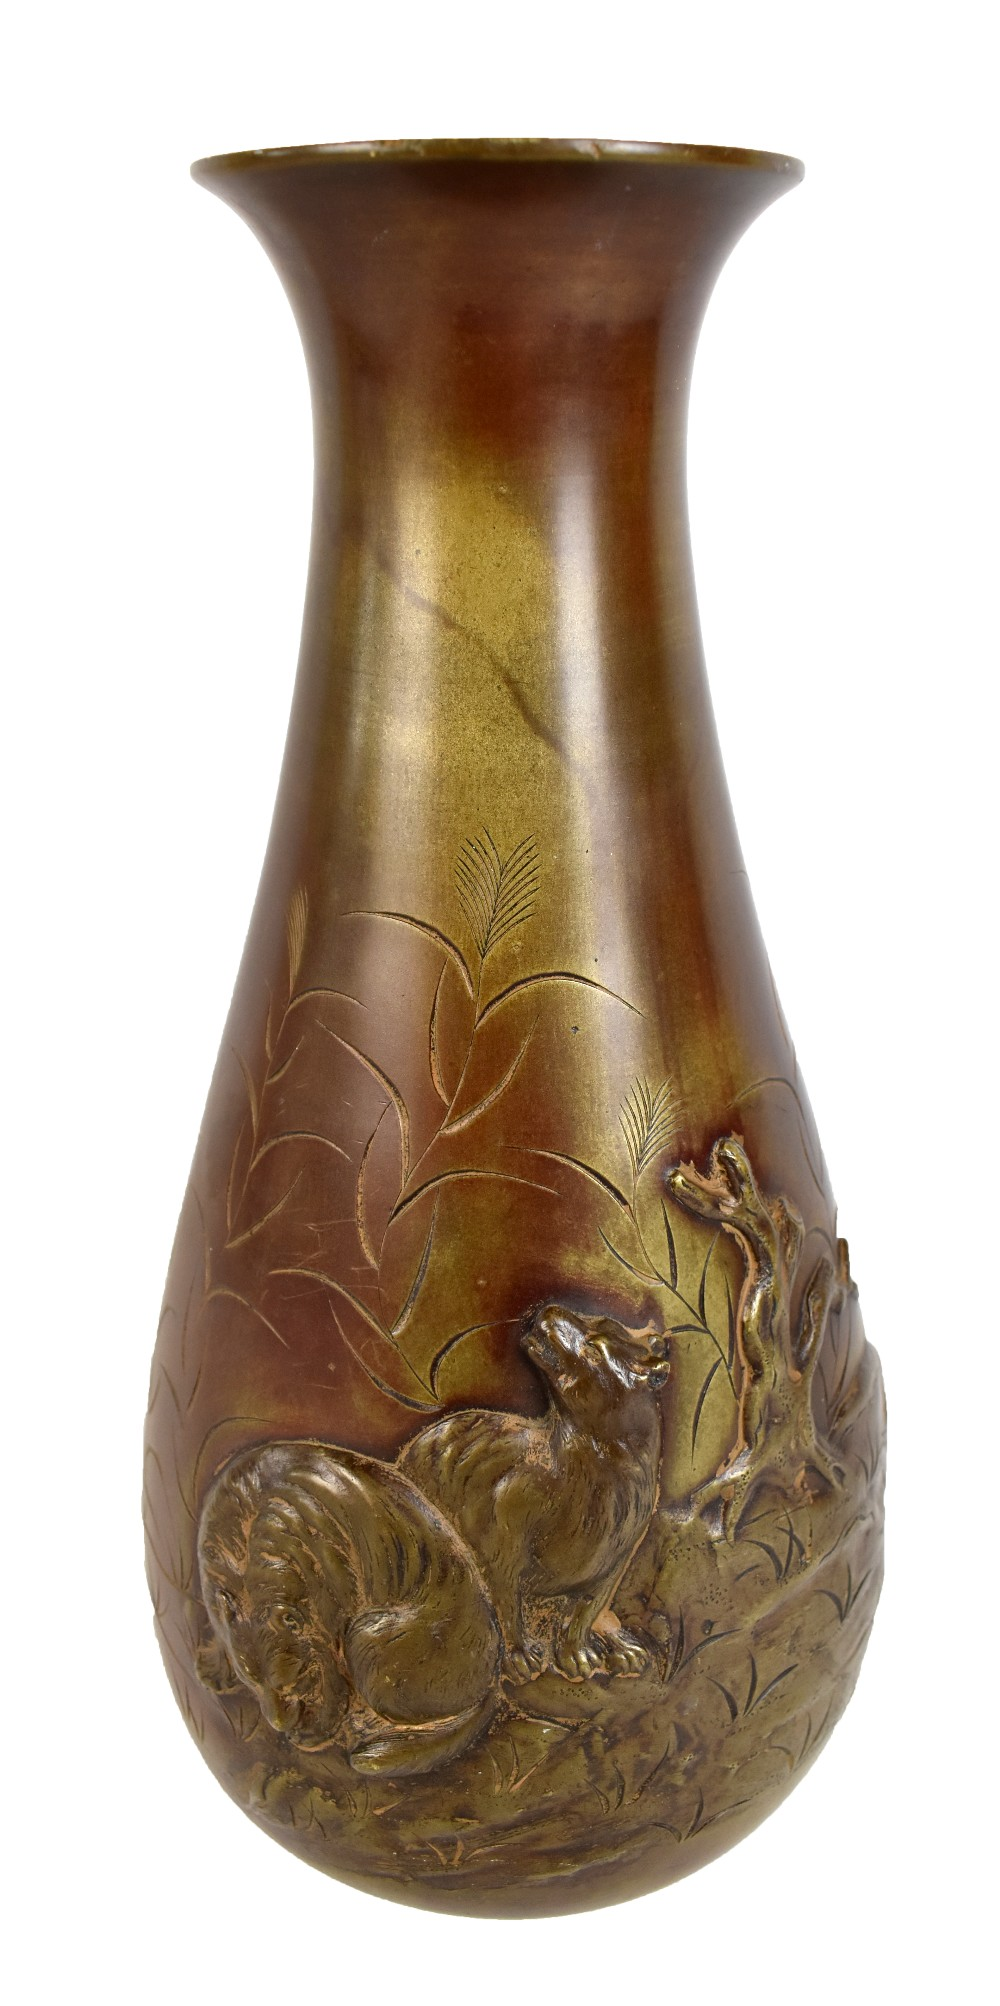 A Japanese Meiji period bronze vase featuring wolves on rocky outcrop in relief against further